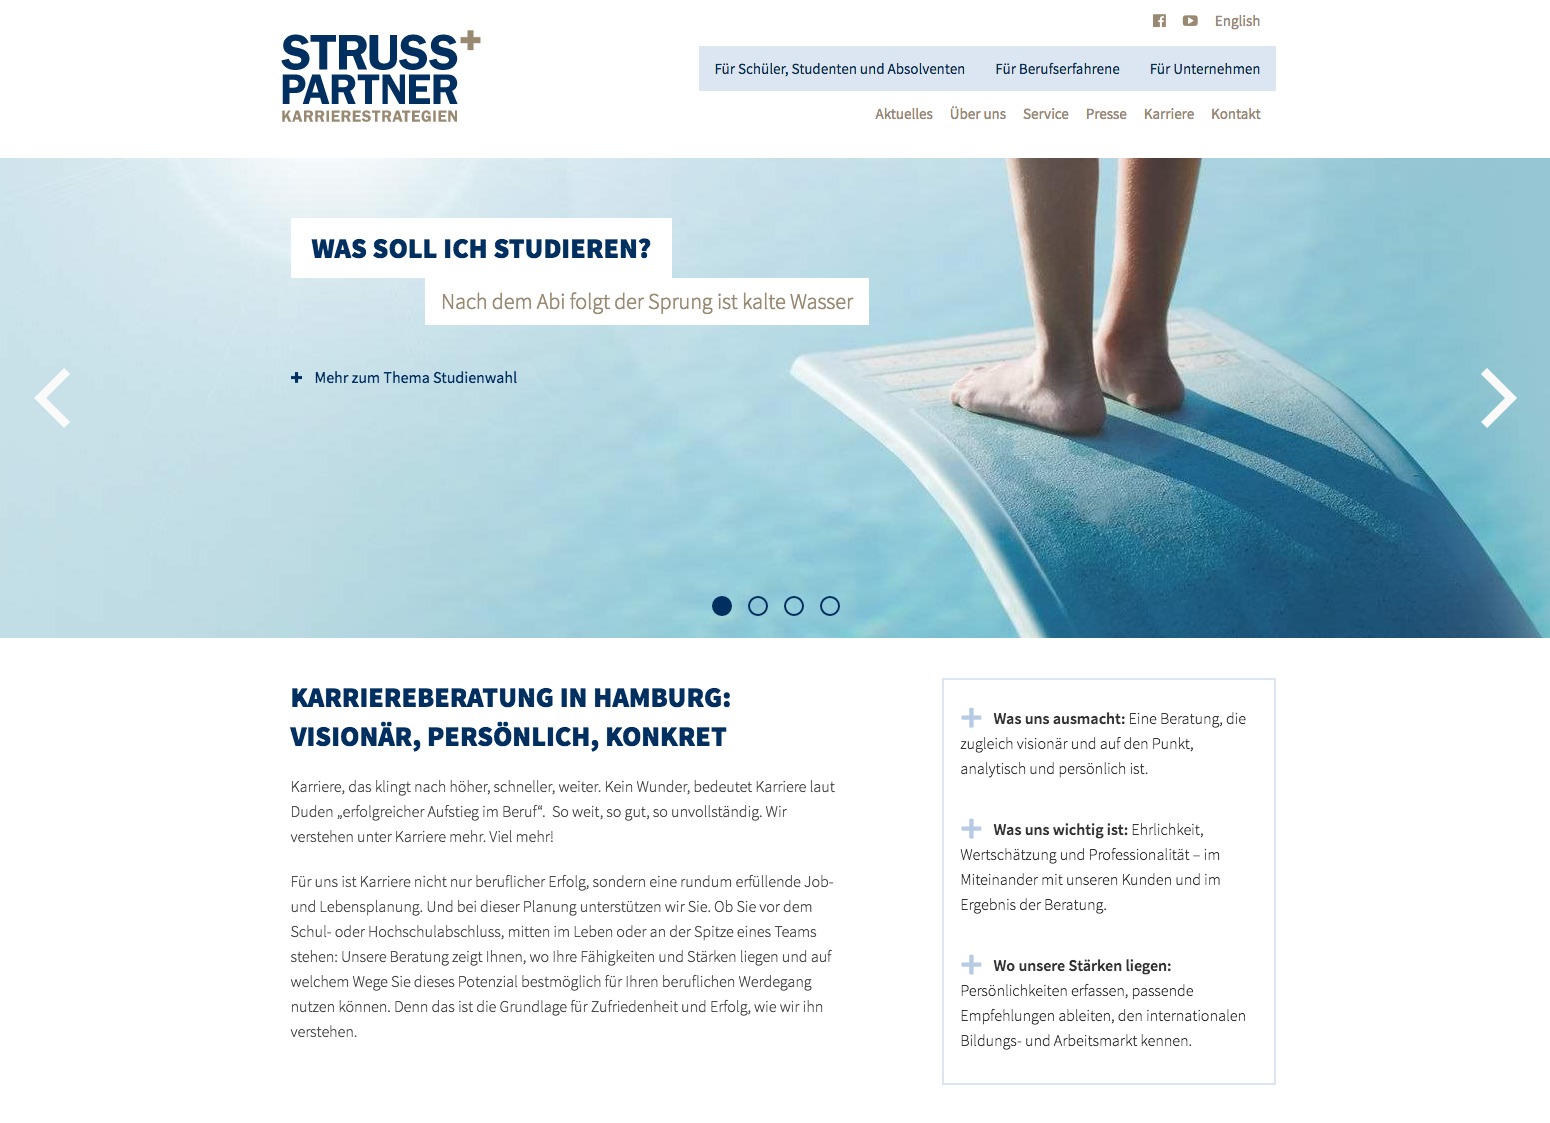 Struss und Partner Karrierestrategien